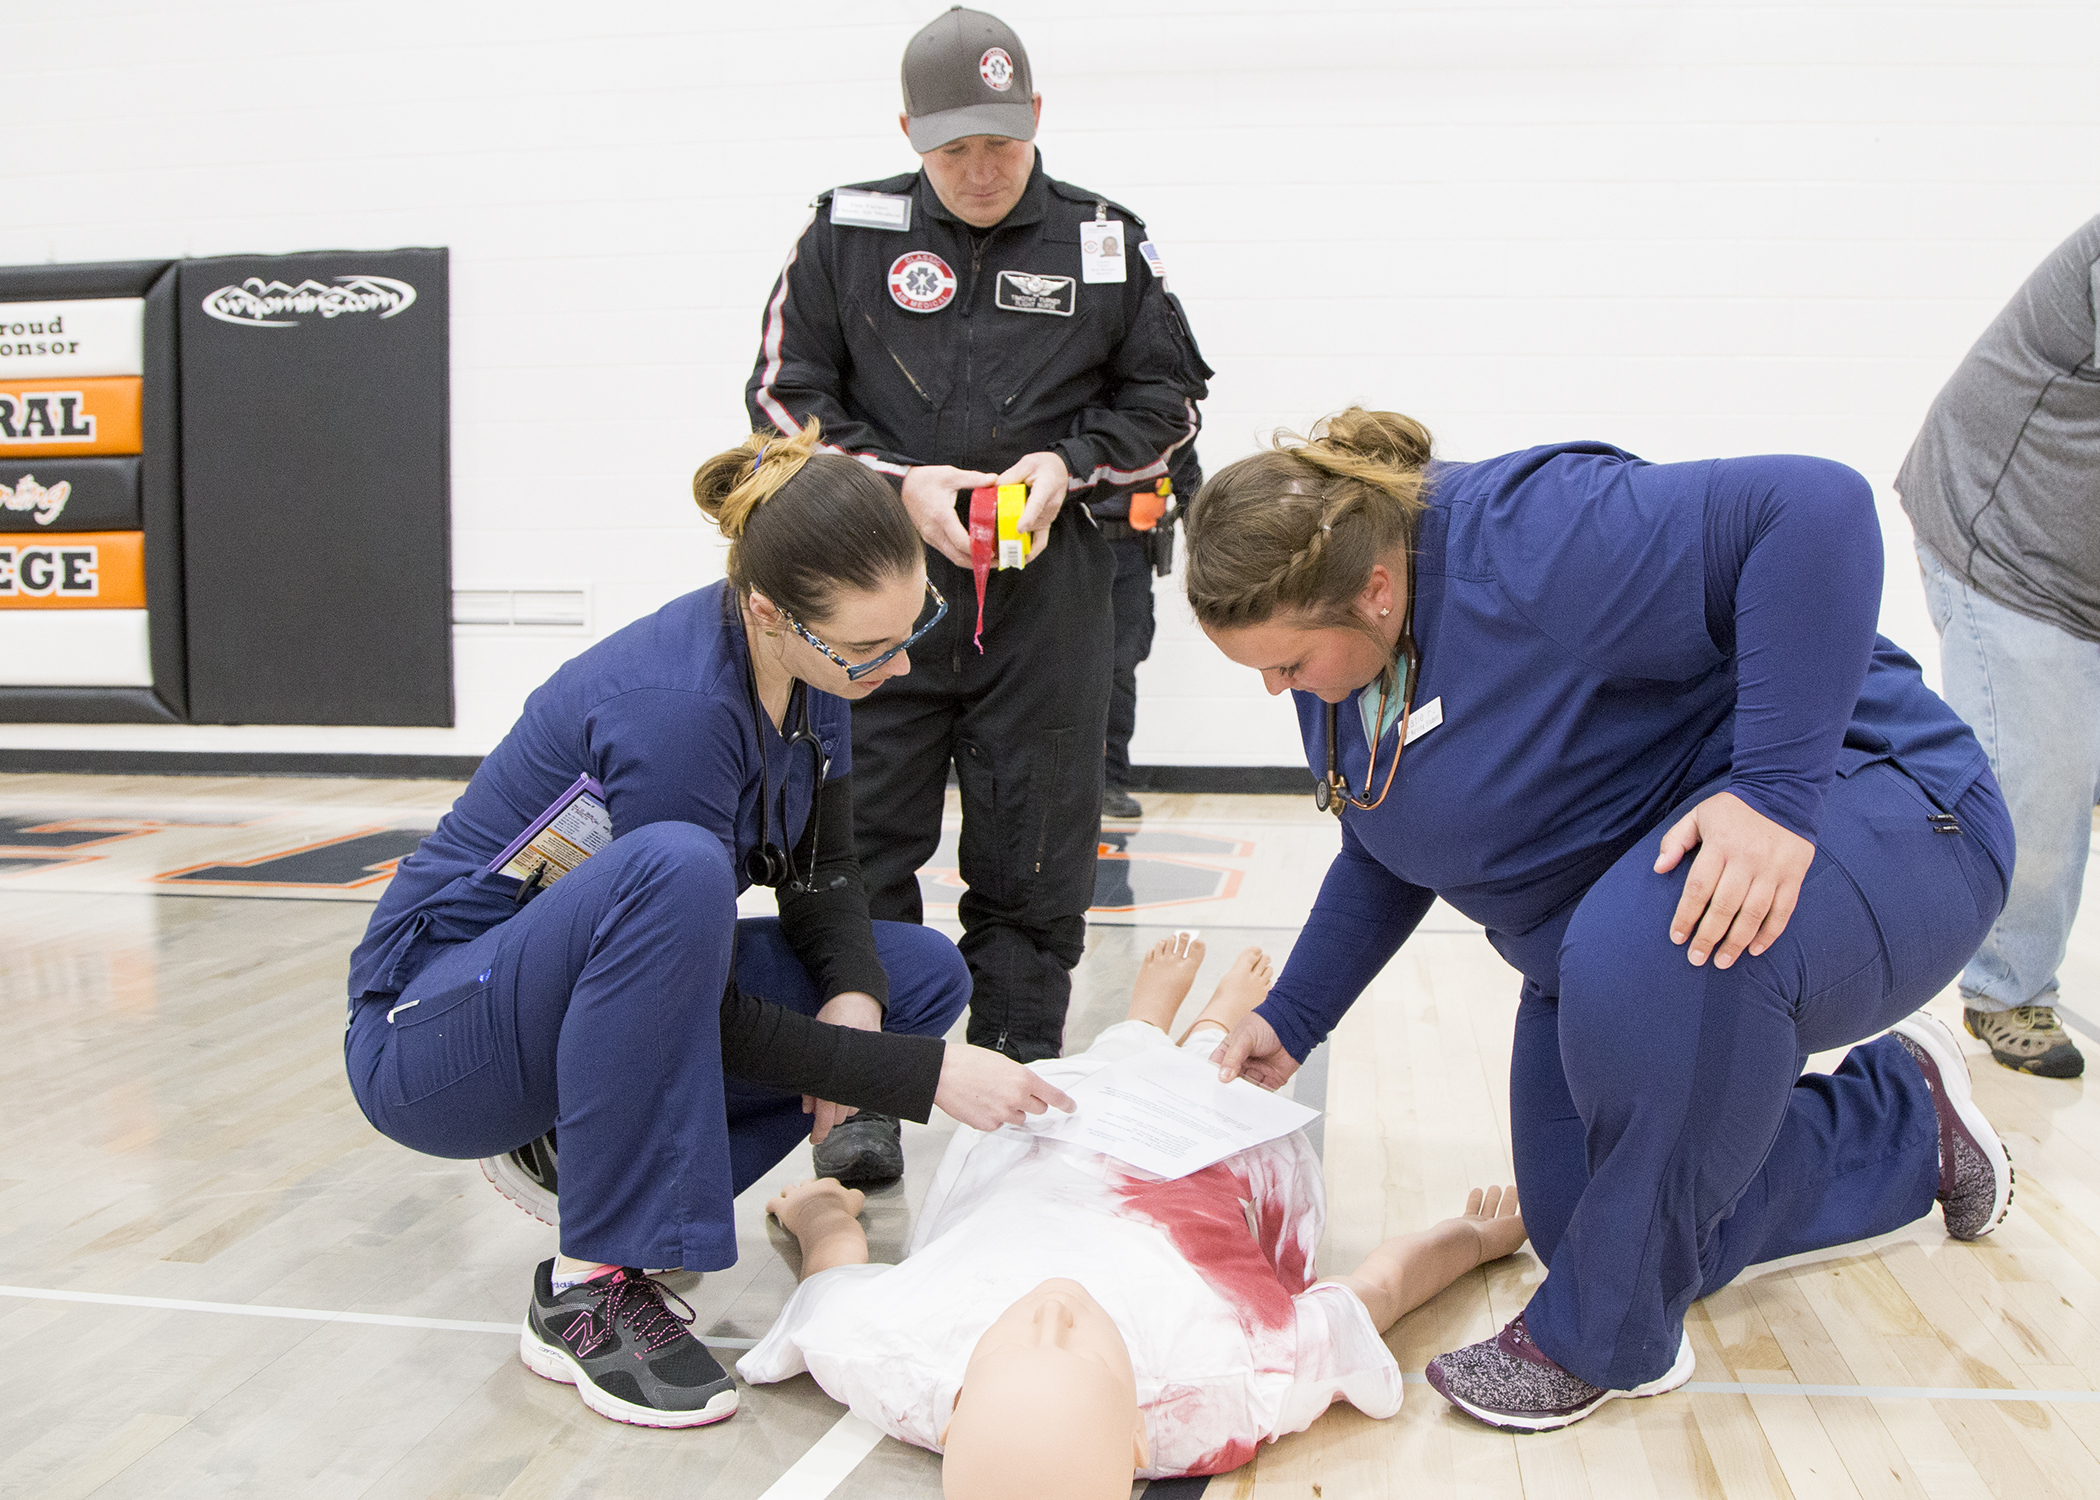 two nursing students look at a dummy for fake injuries while a flight for life medic assesses their work